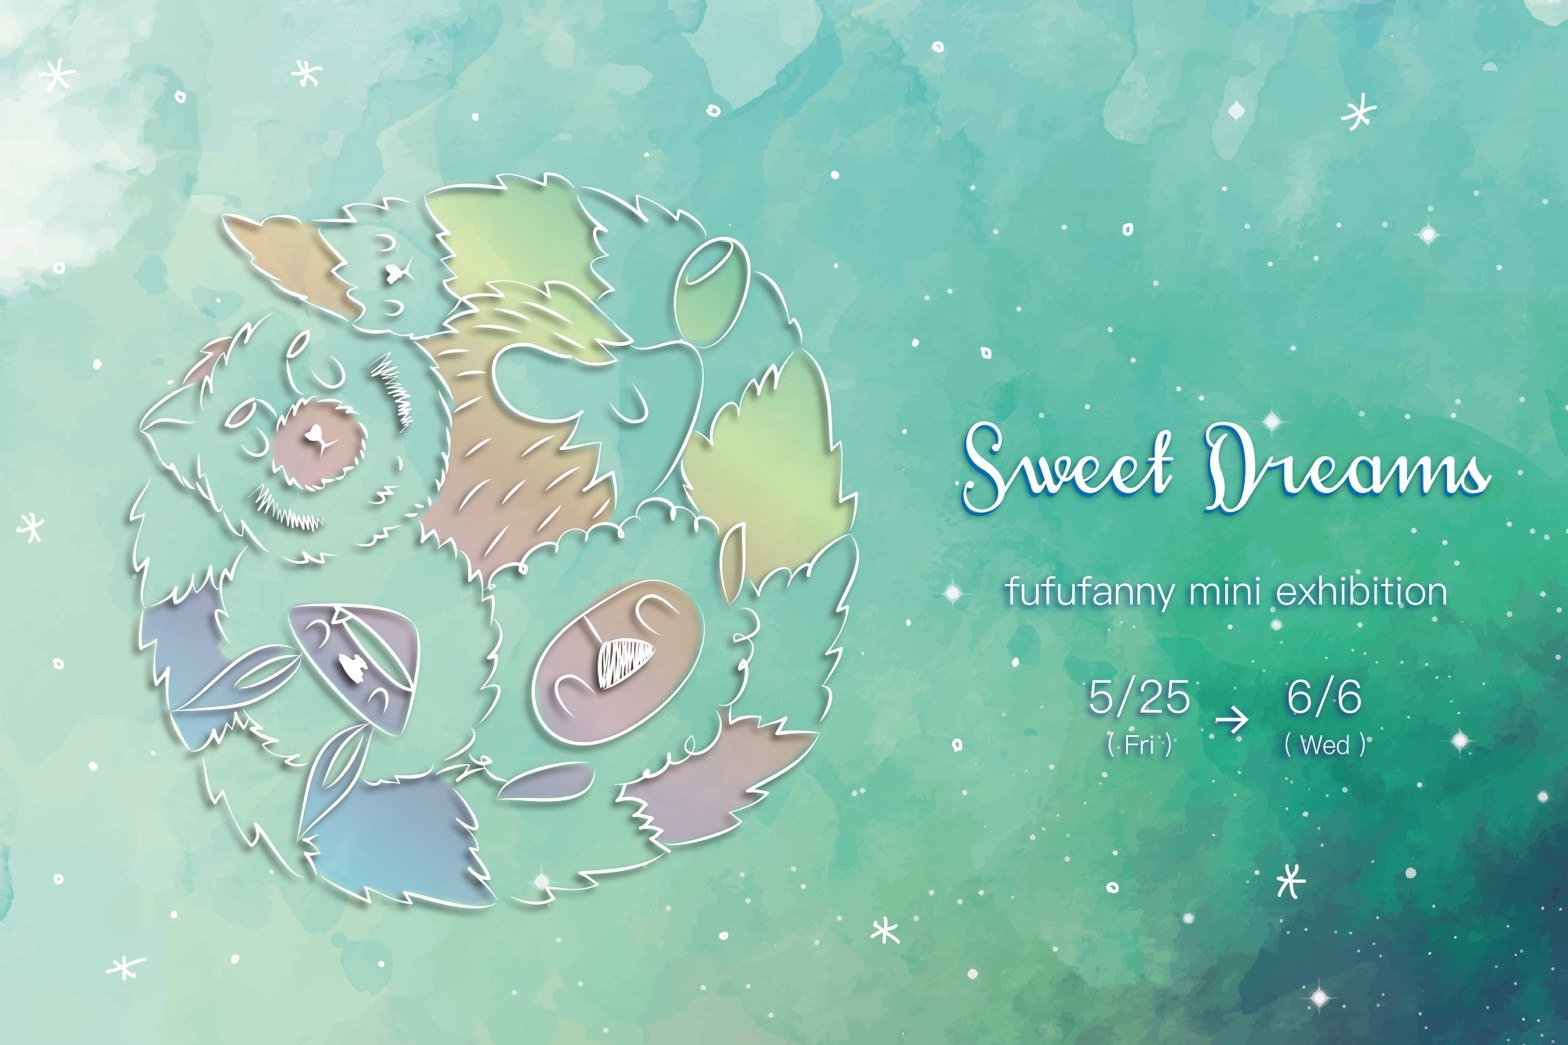 5/25~6/6 fufufannyさん mini exhibition 『Sweet Dreams』開催のお知らせ_f0010033_23363582.jpg